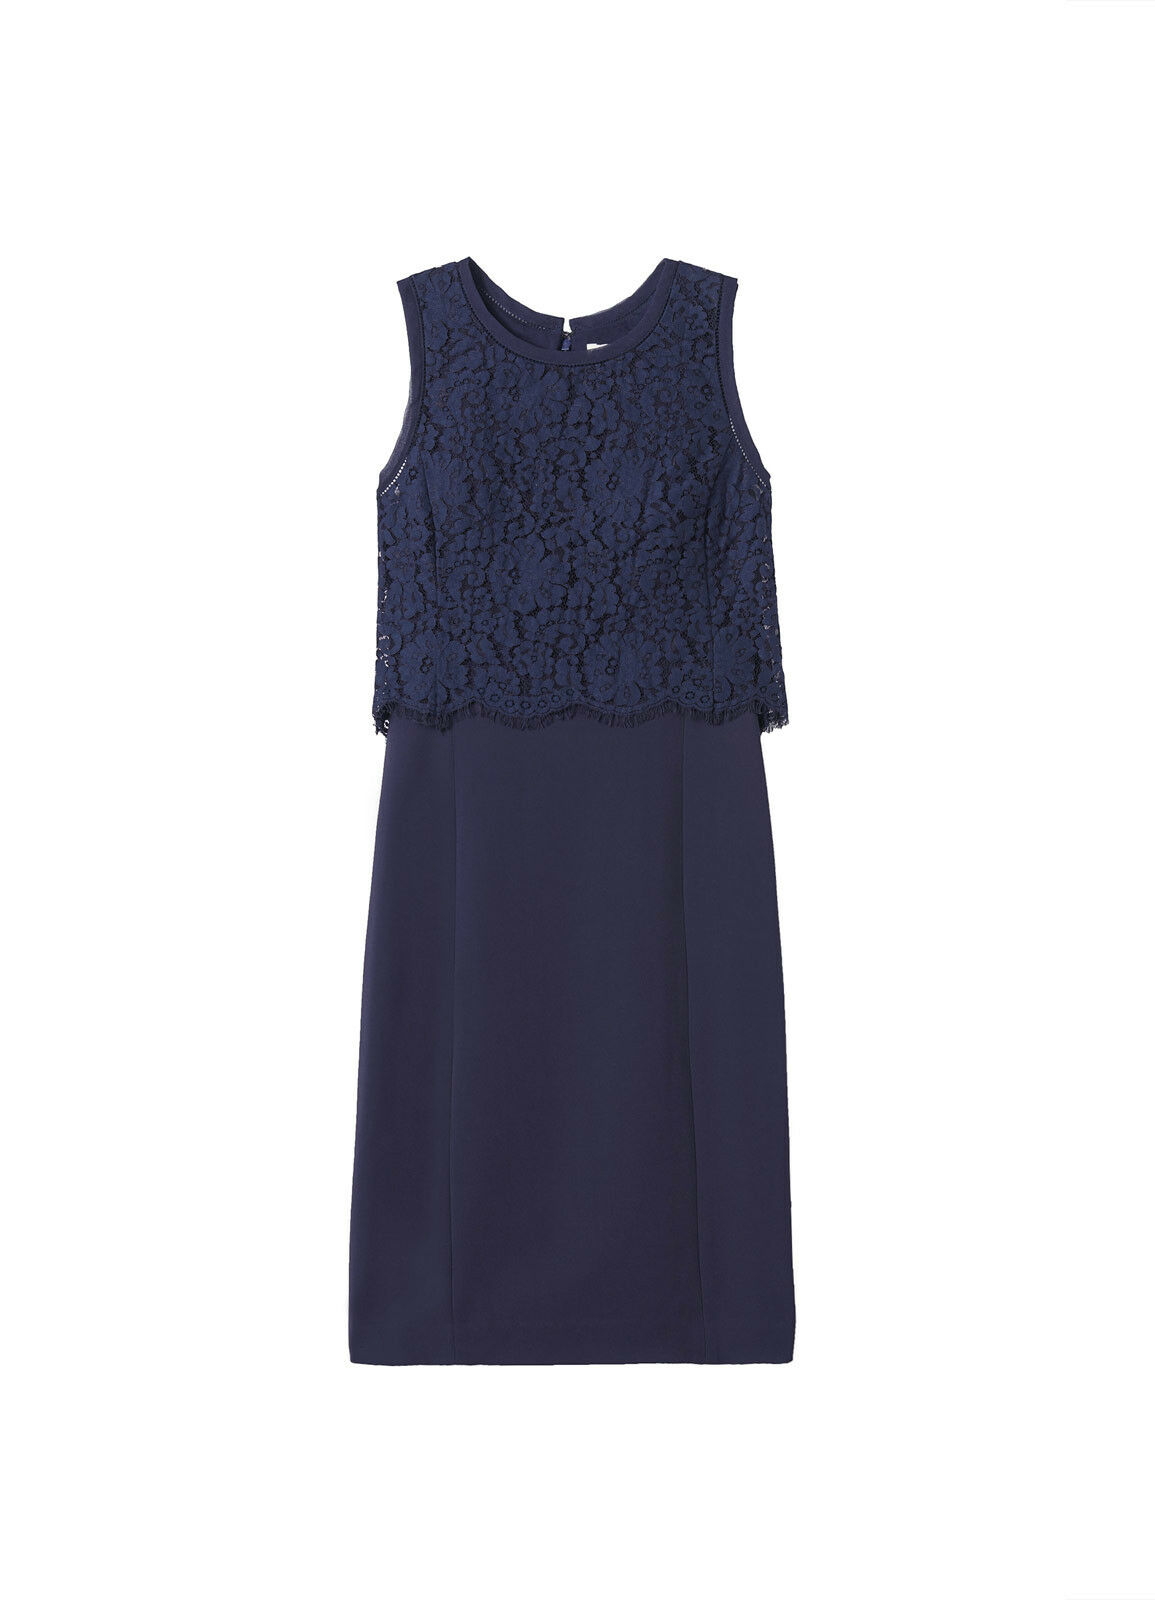 REBECCA TAYLOR Sleeveless Refined Suiting Dress with Lace, Size 8